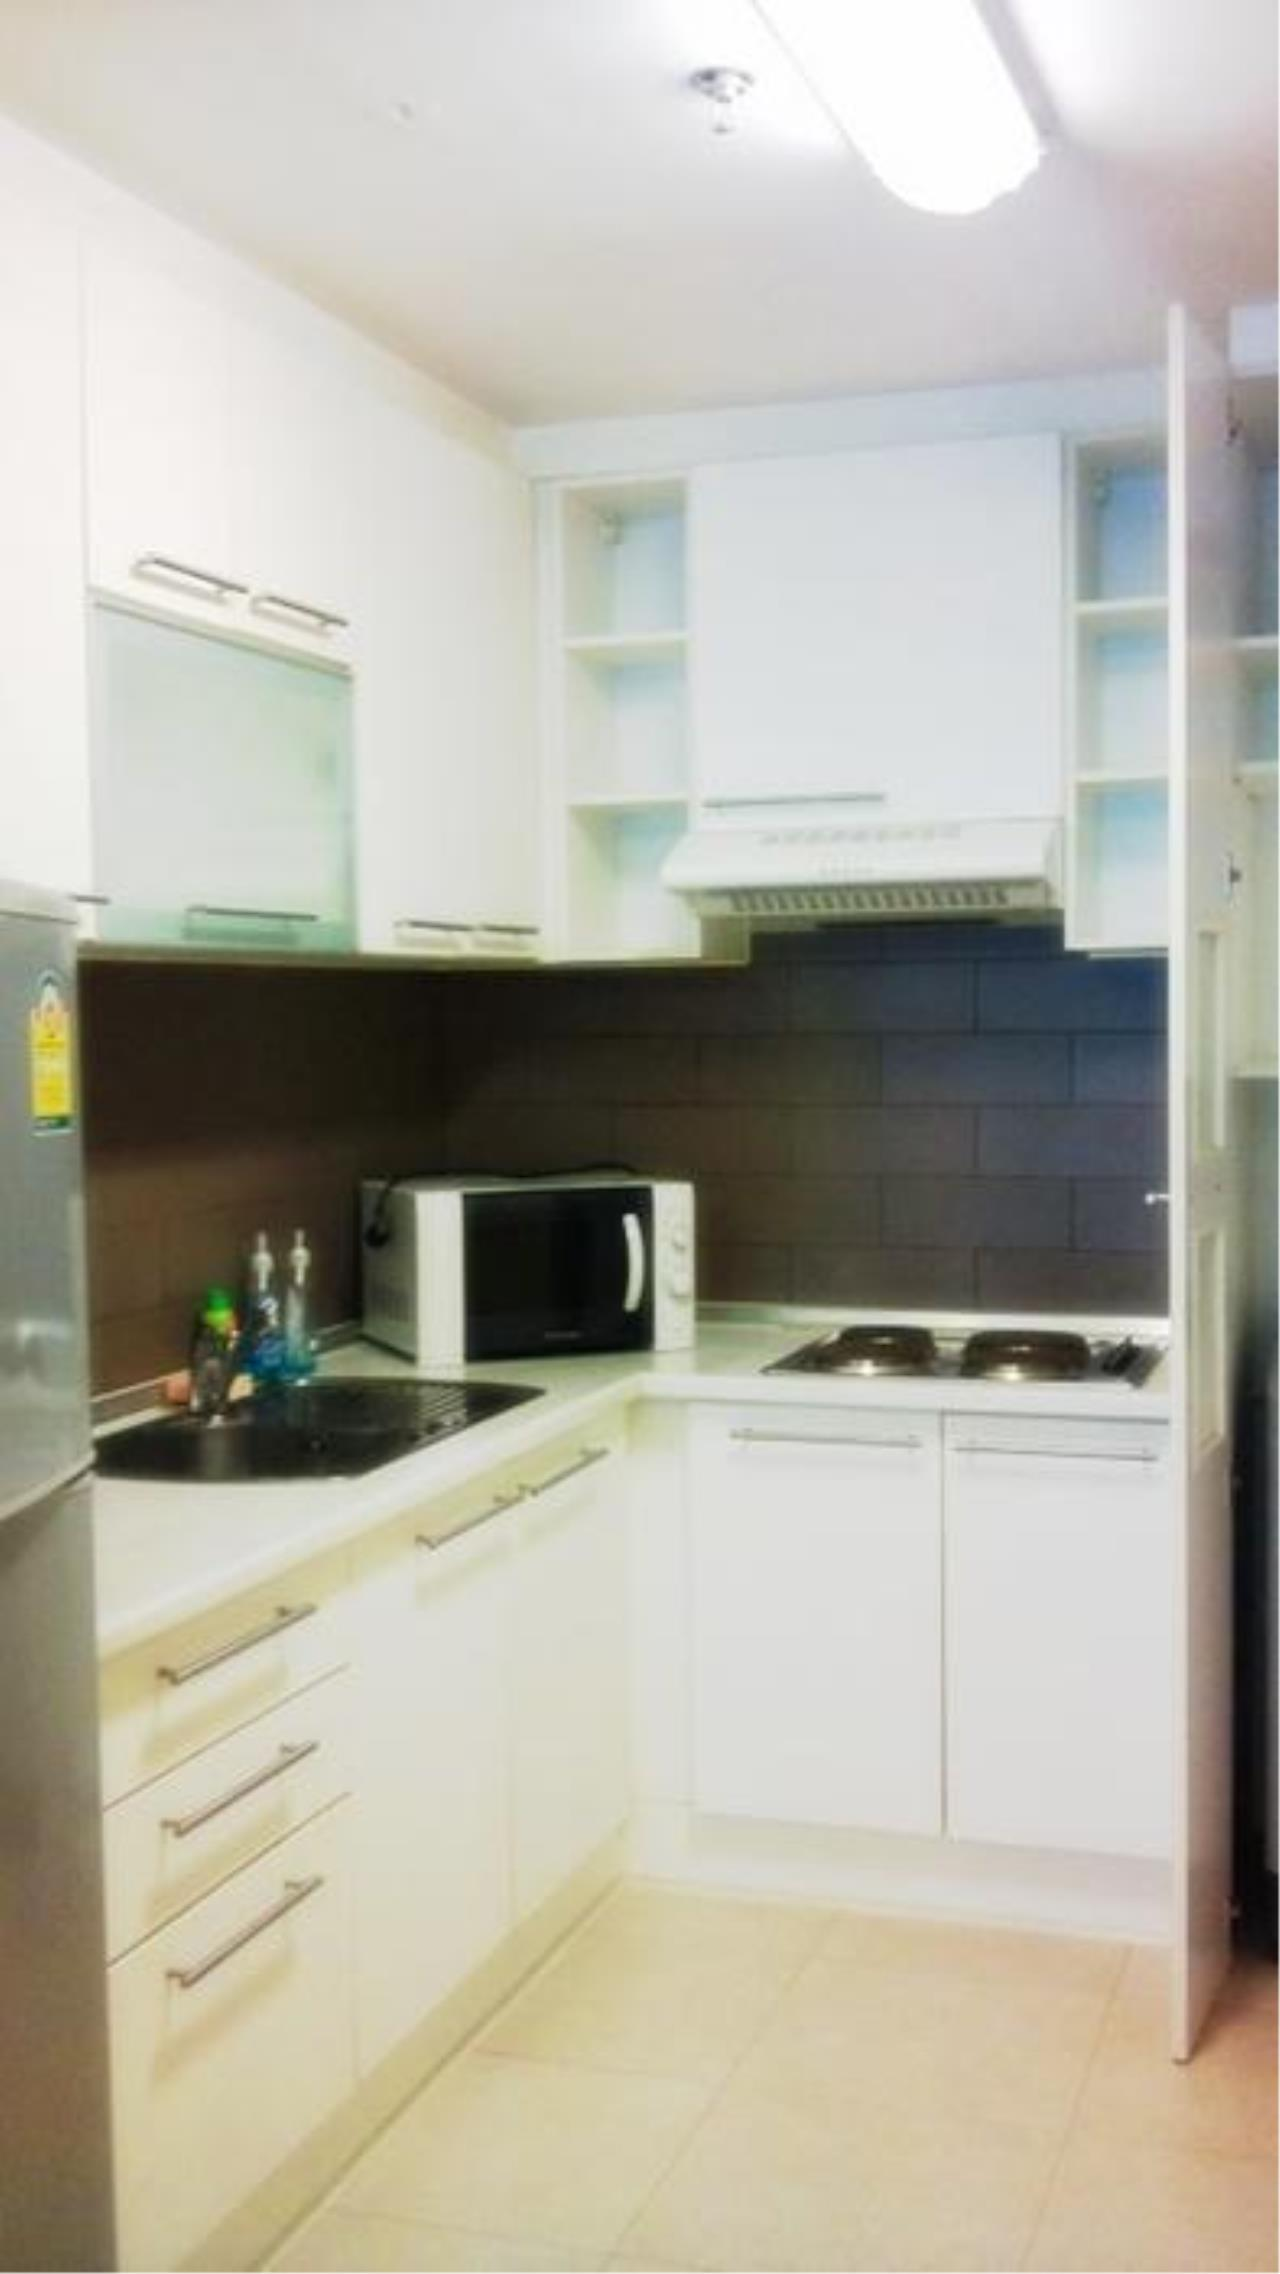 Piri Property Agency's 3 bedrooms  For Sale - Grand Park View Asoke 1